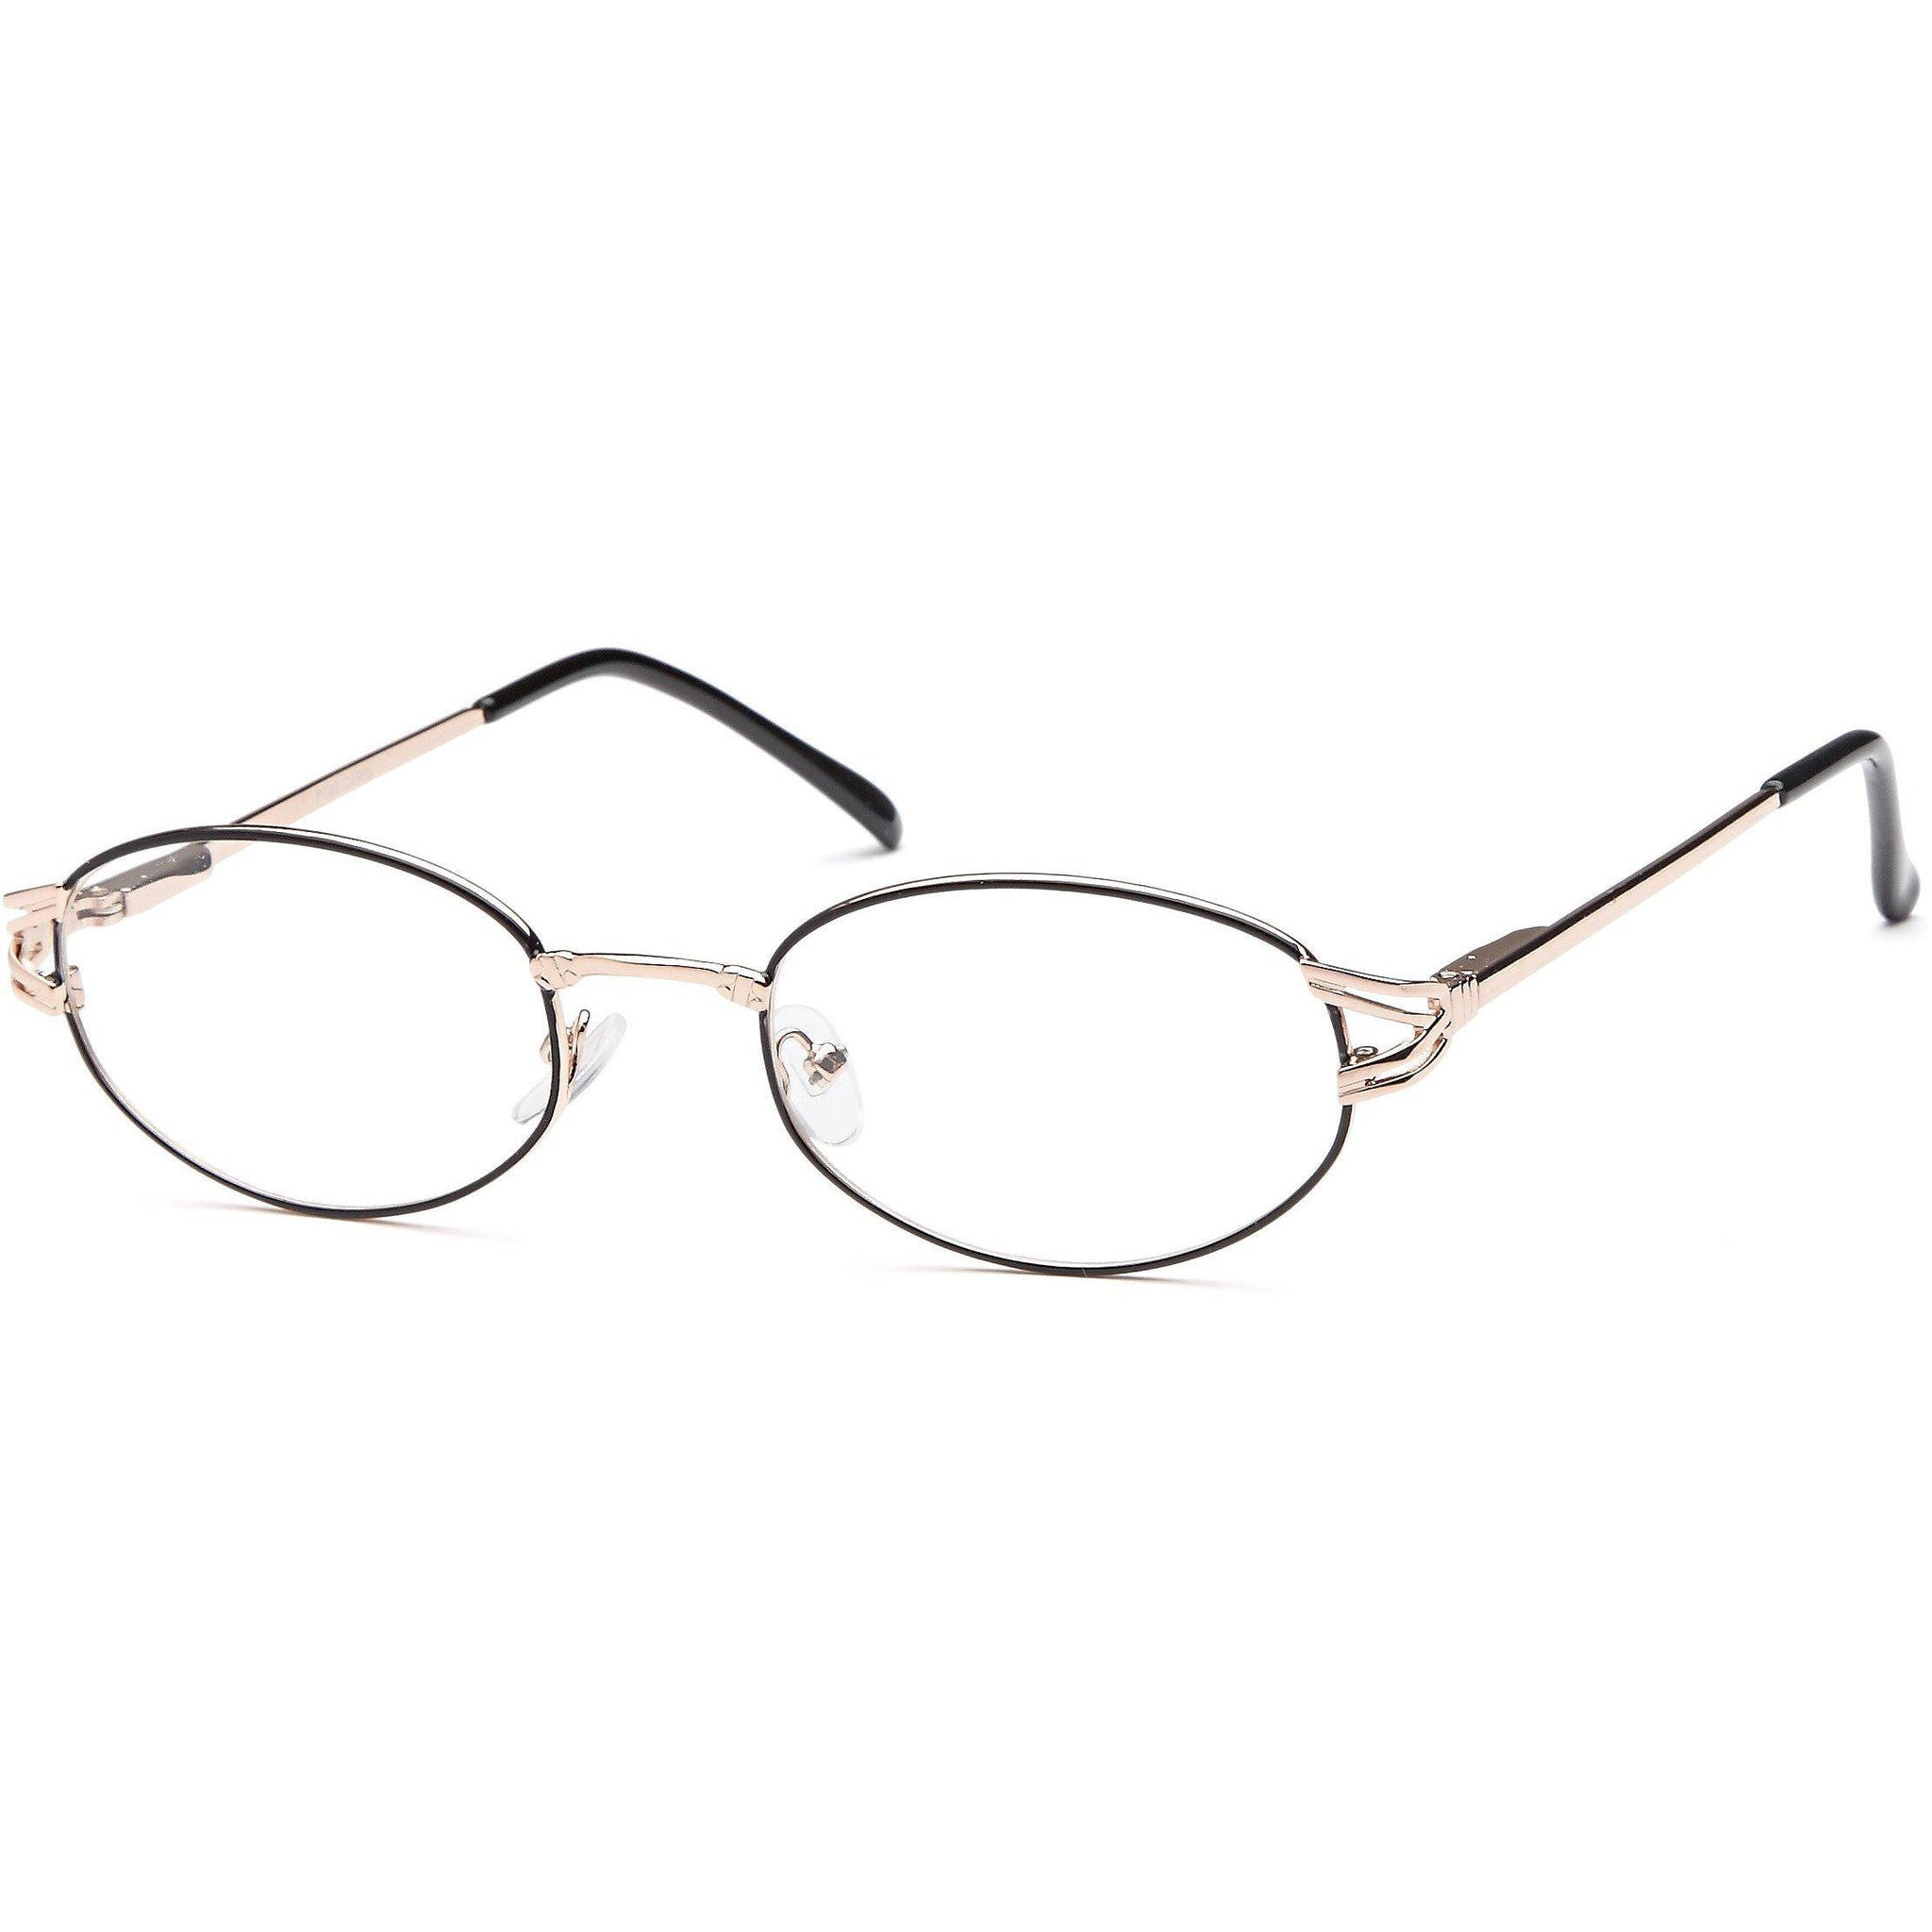 Appletree Prescription Glasses PT 42 Eyeglasses Frame